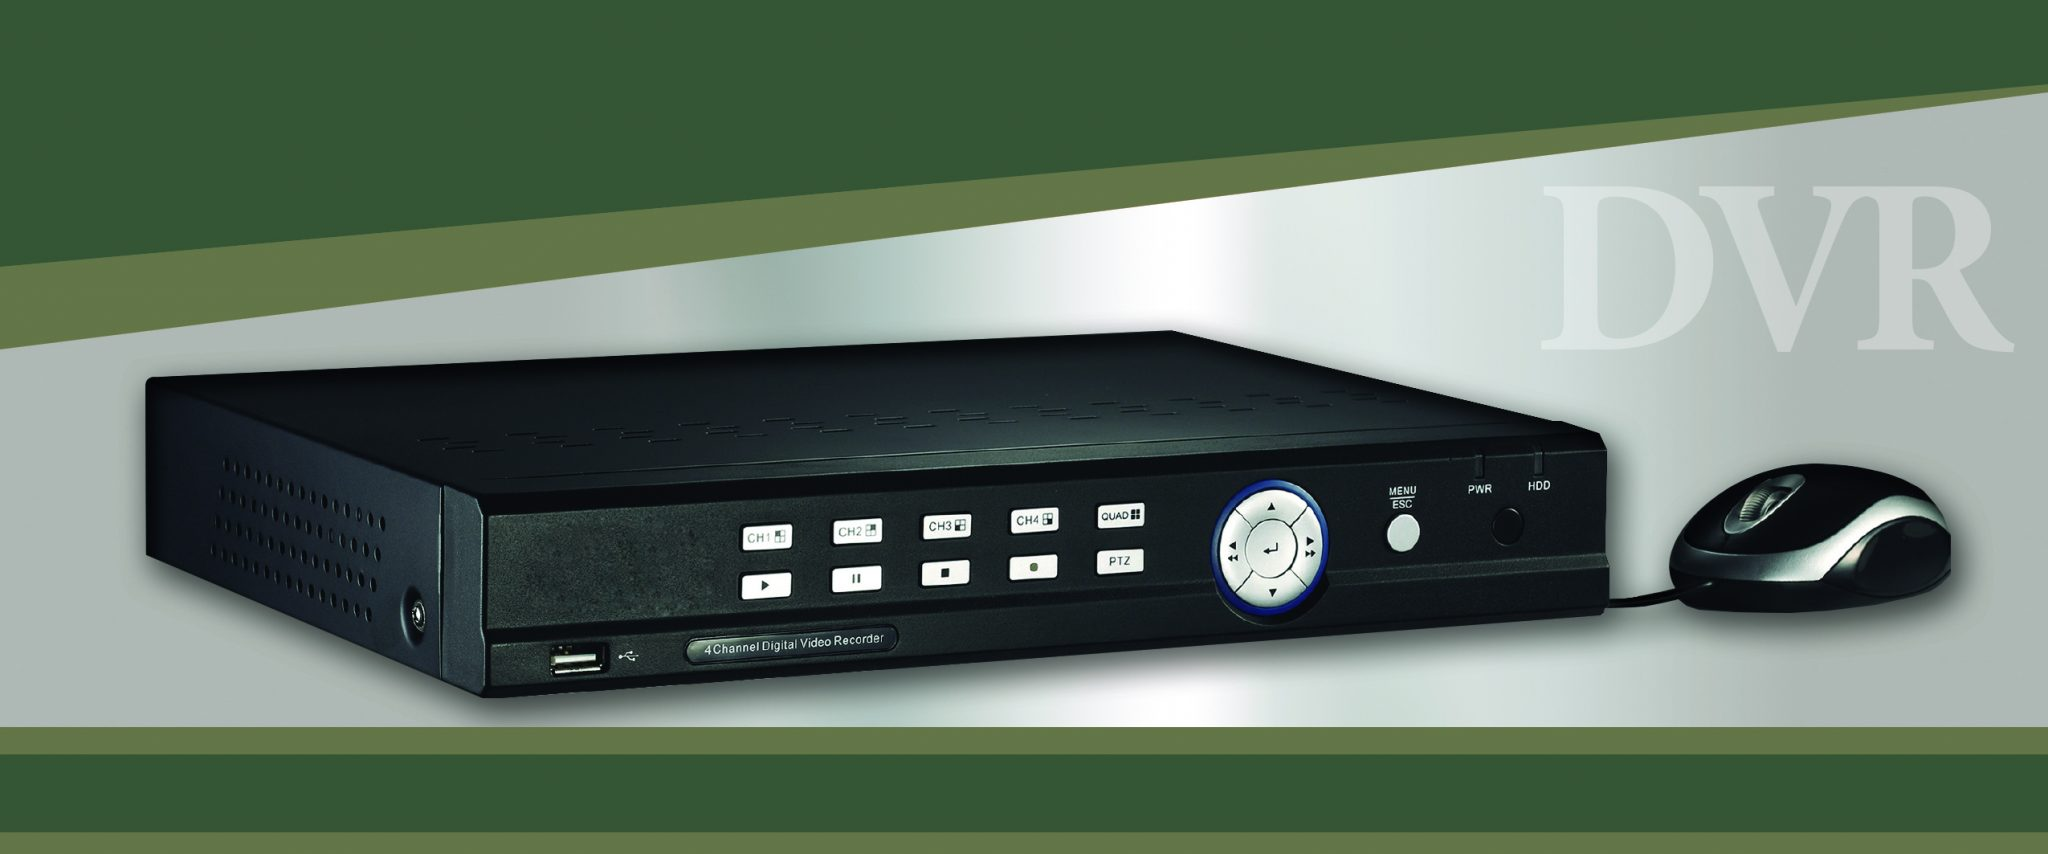 DVR - Security Digital video recorder System